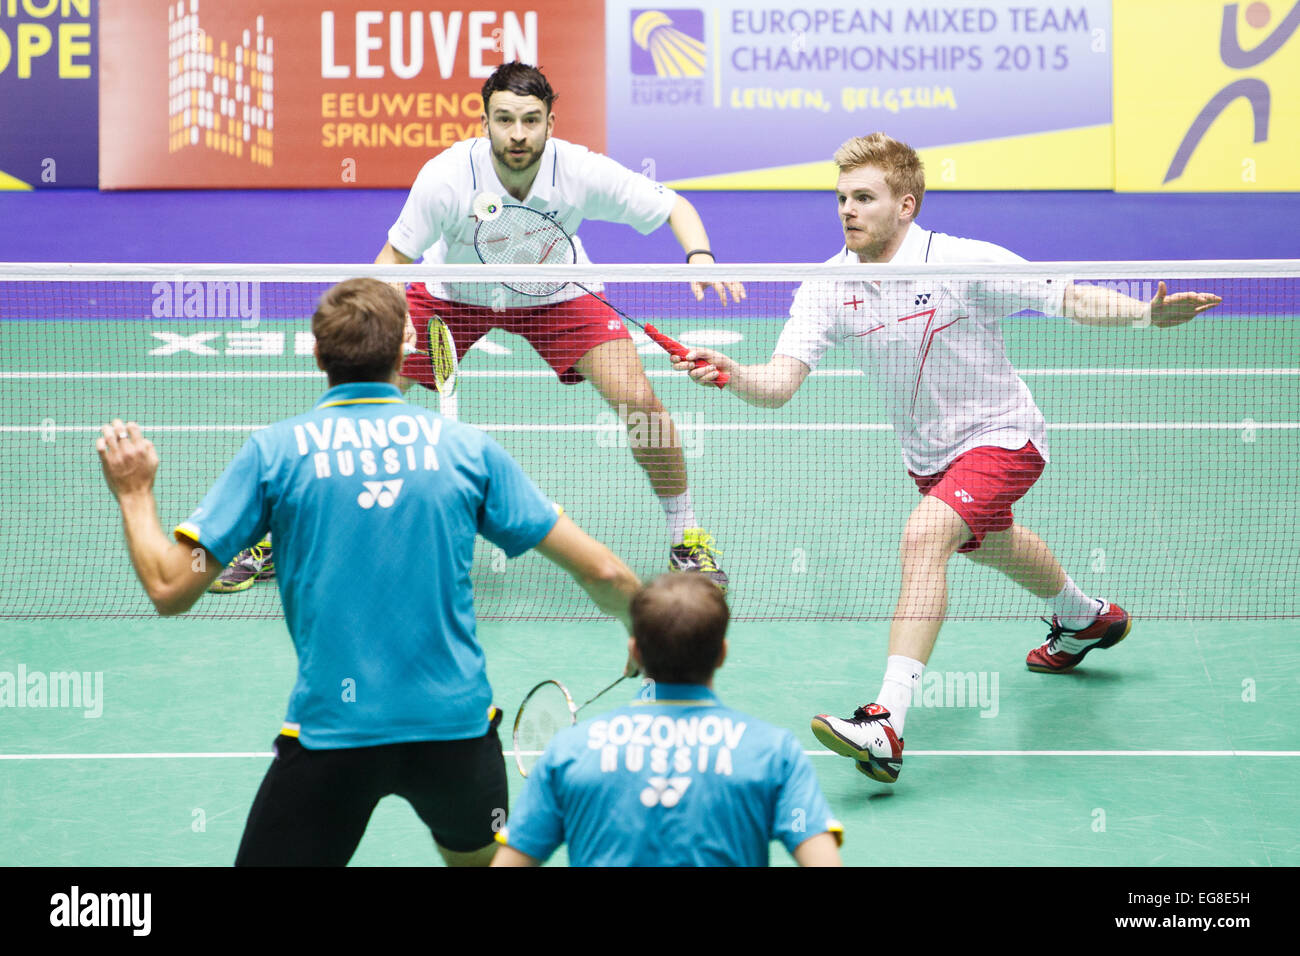 Chris Langridge badminton player